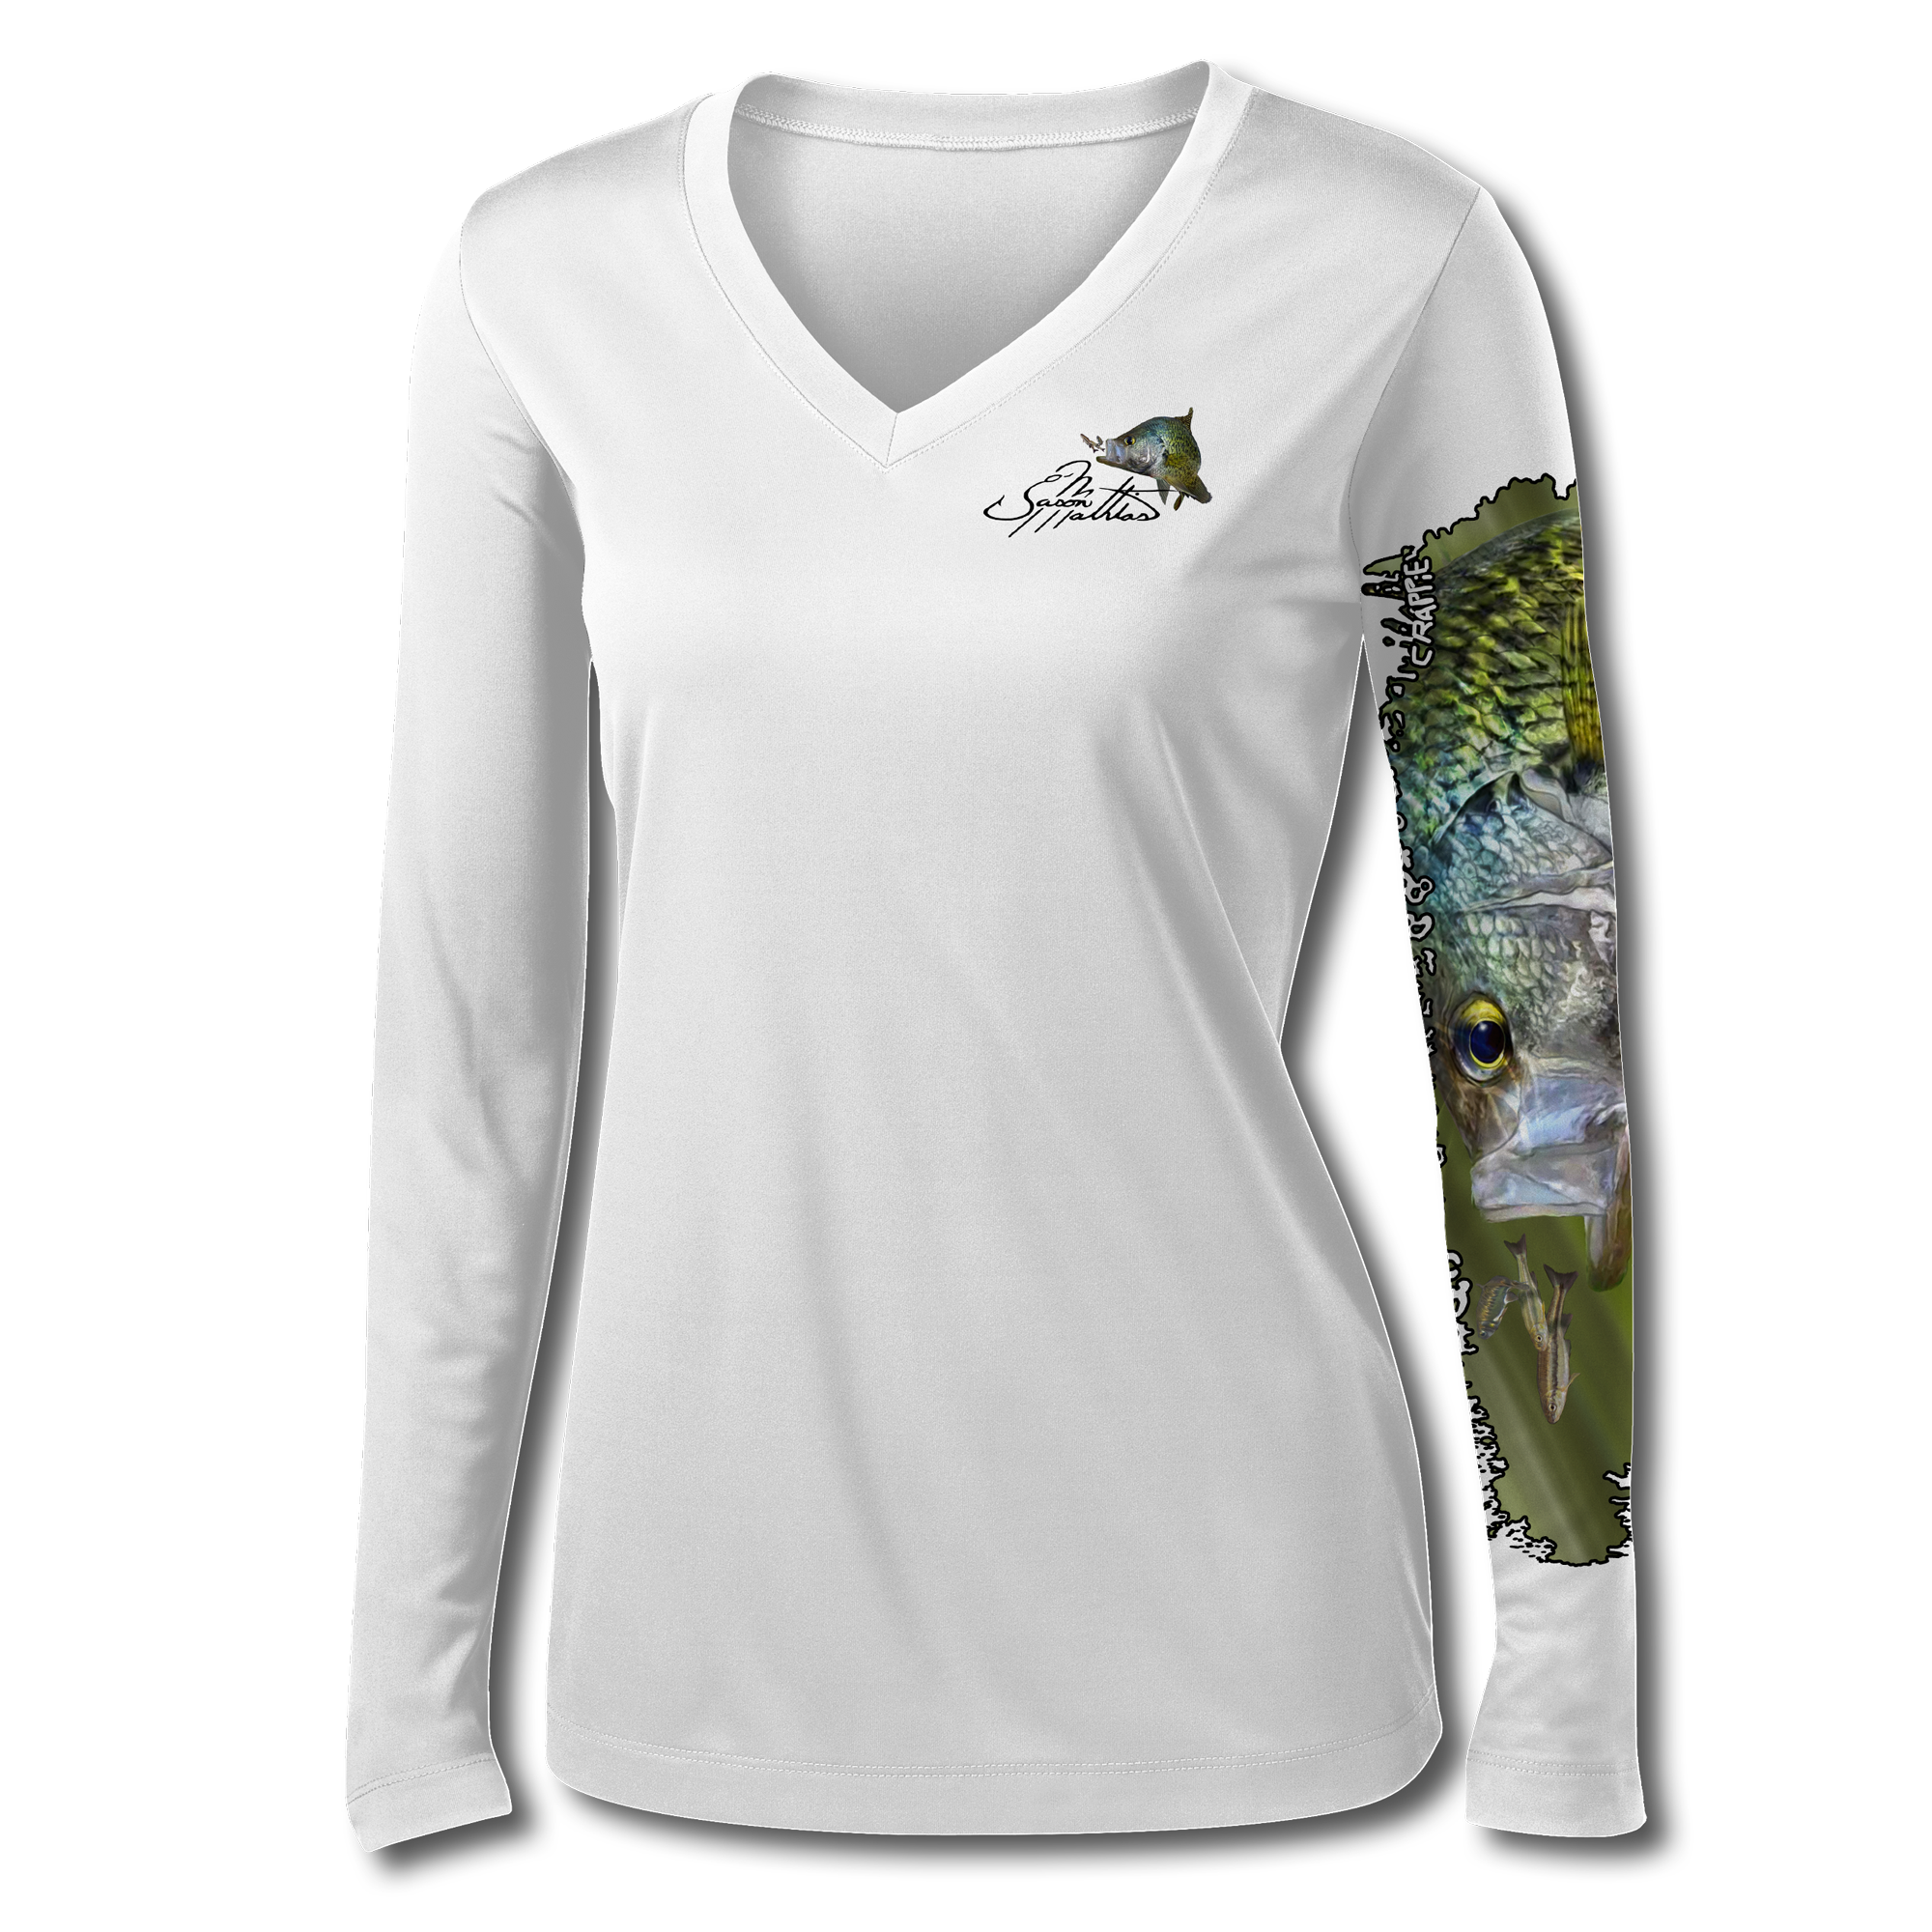 jason-mathias-womans-black-crappie-high-perforamce-t-shirt-desing-front-on-white.png